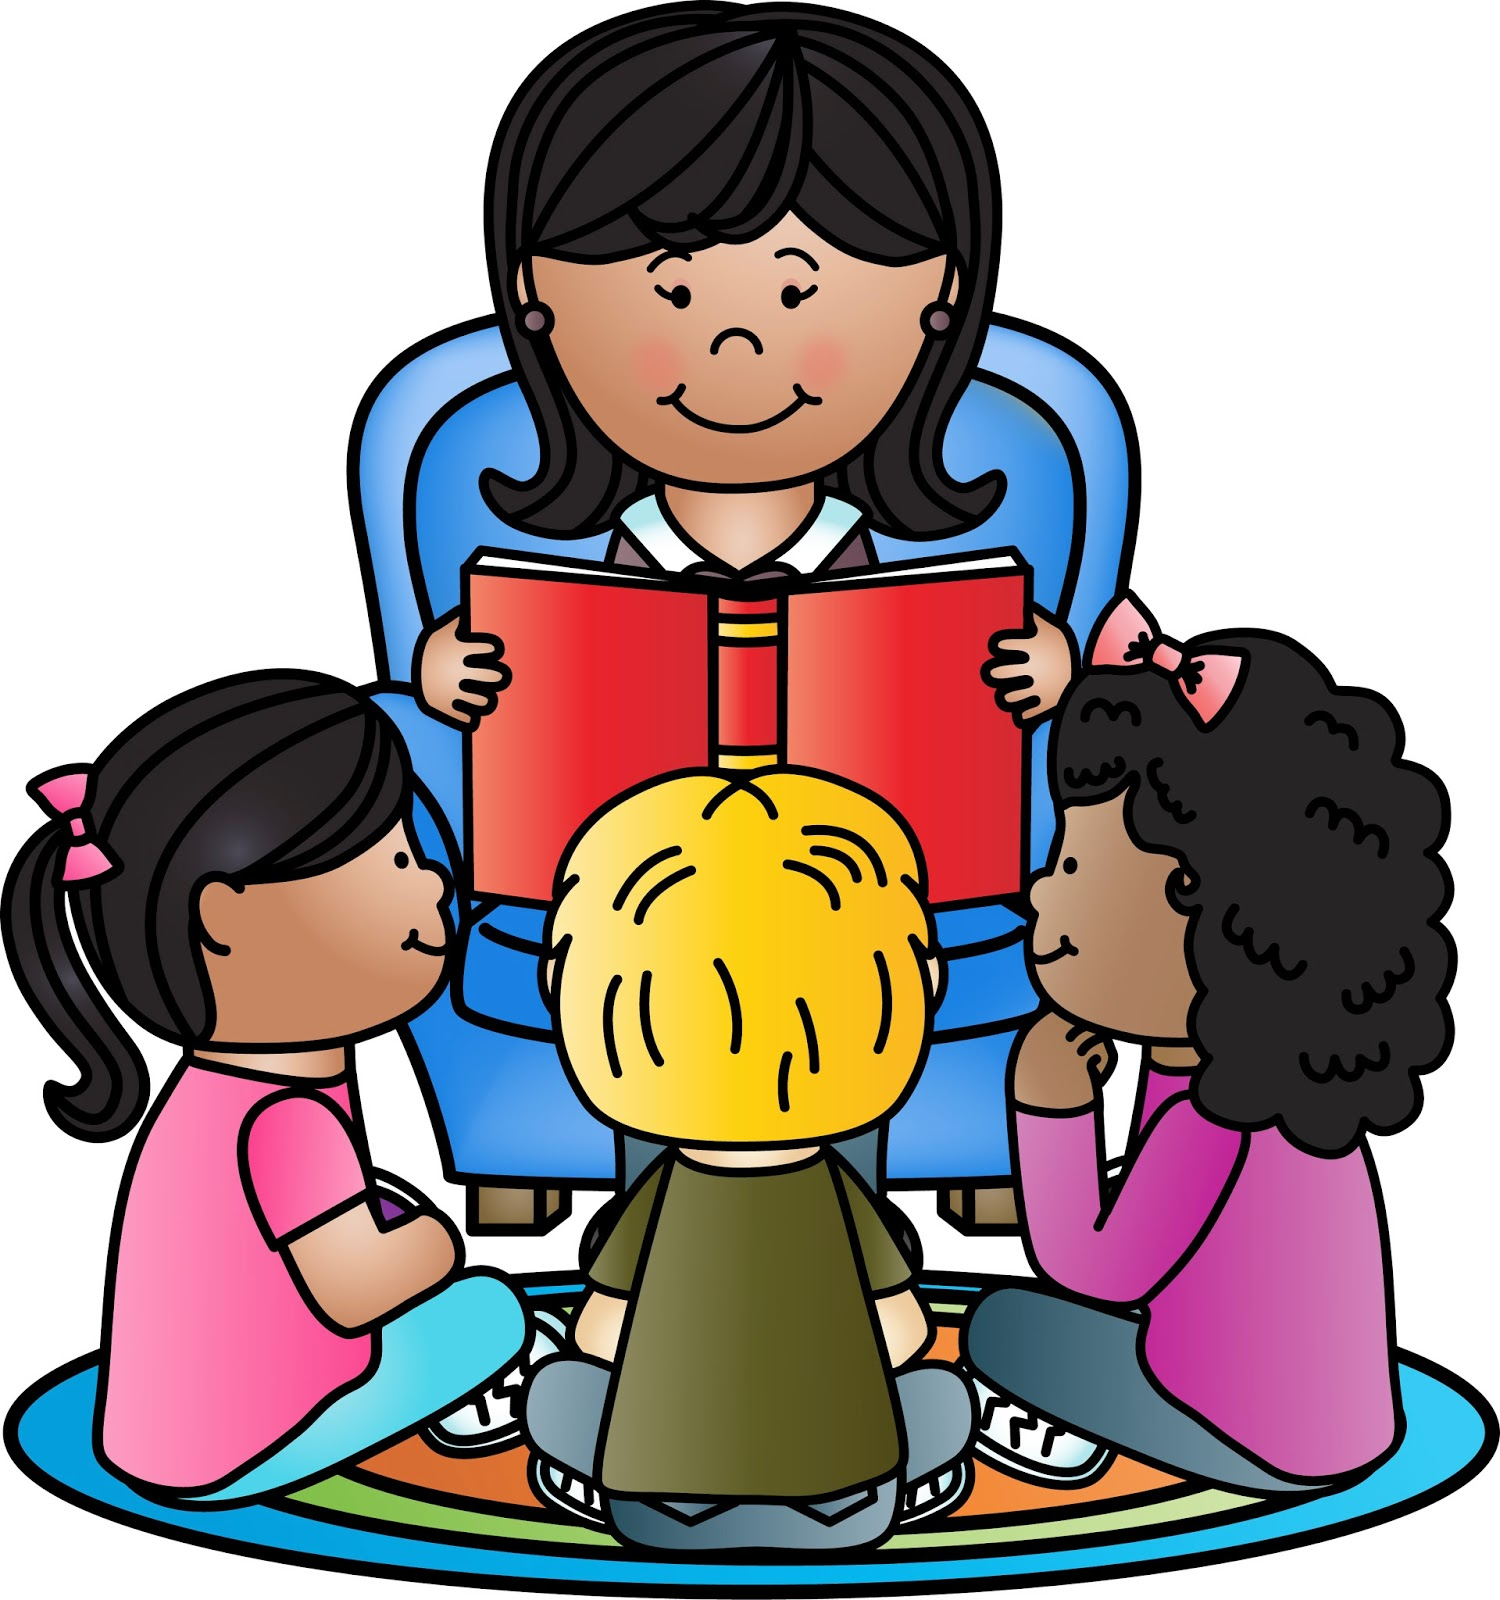 Cute clipart for kindergarten image royalty free stock Kindergarten Clip Art – Gclipart.com image royalty free stock